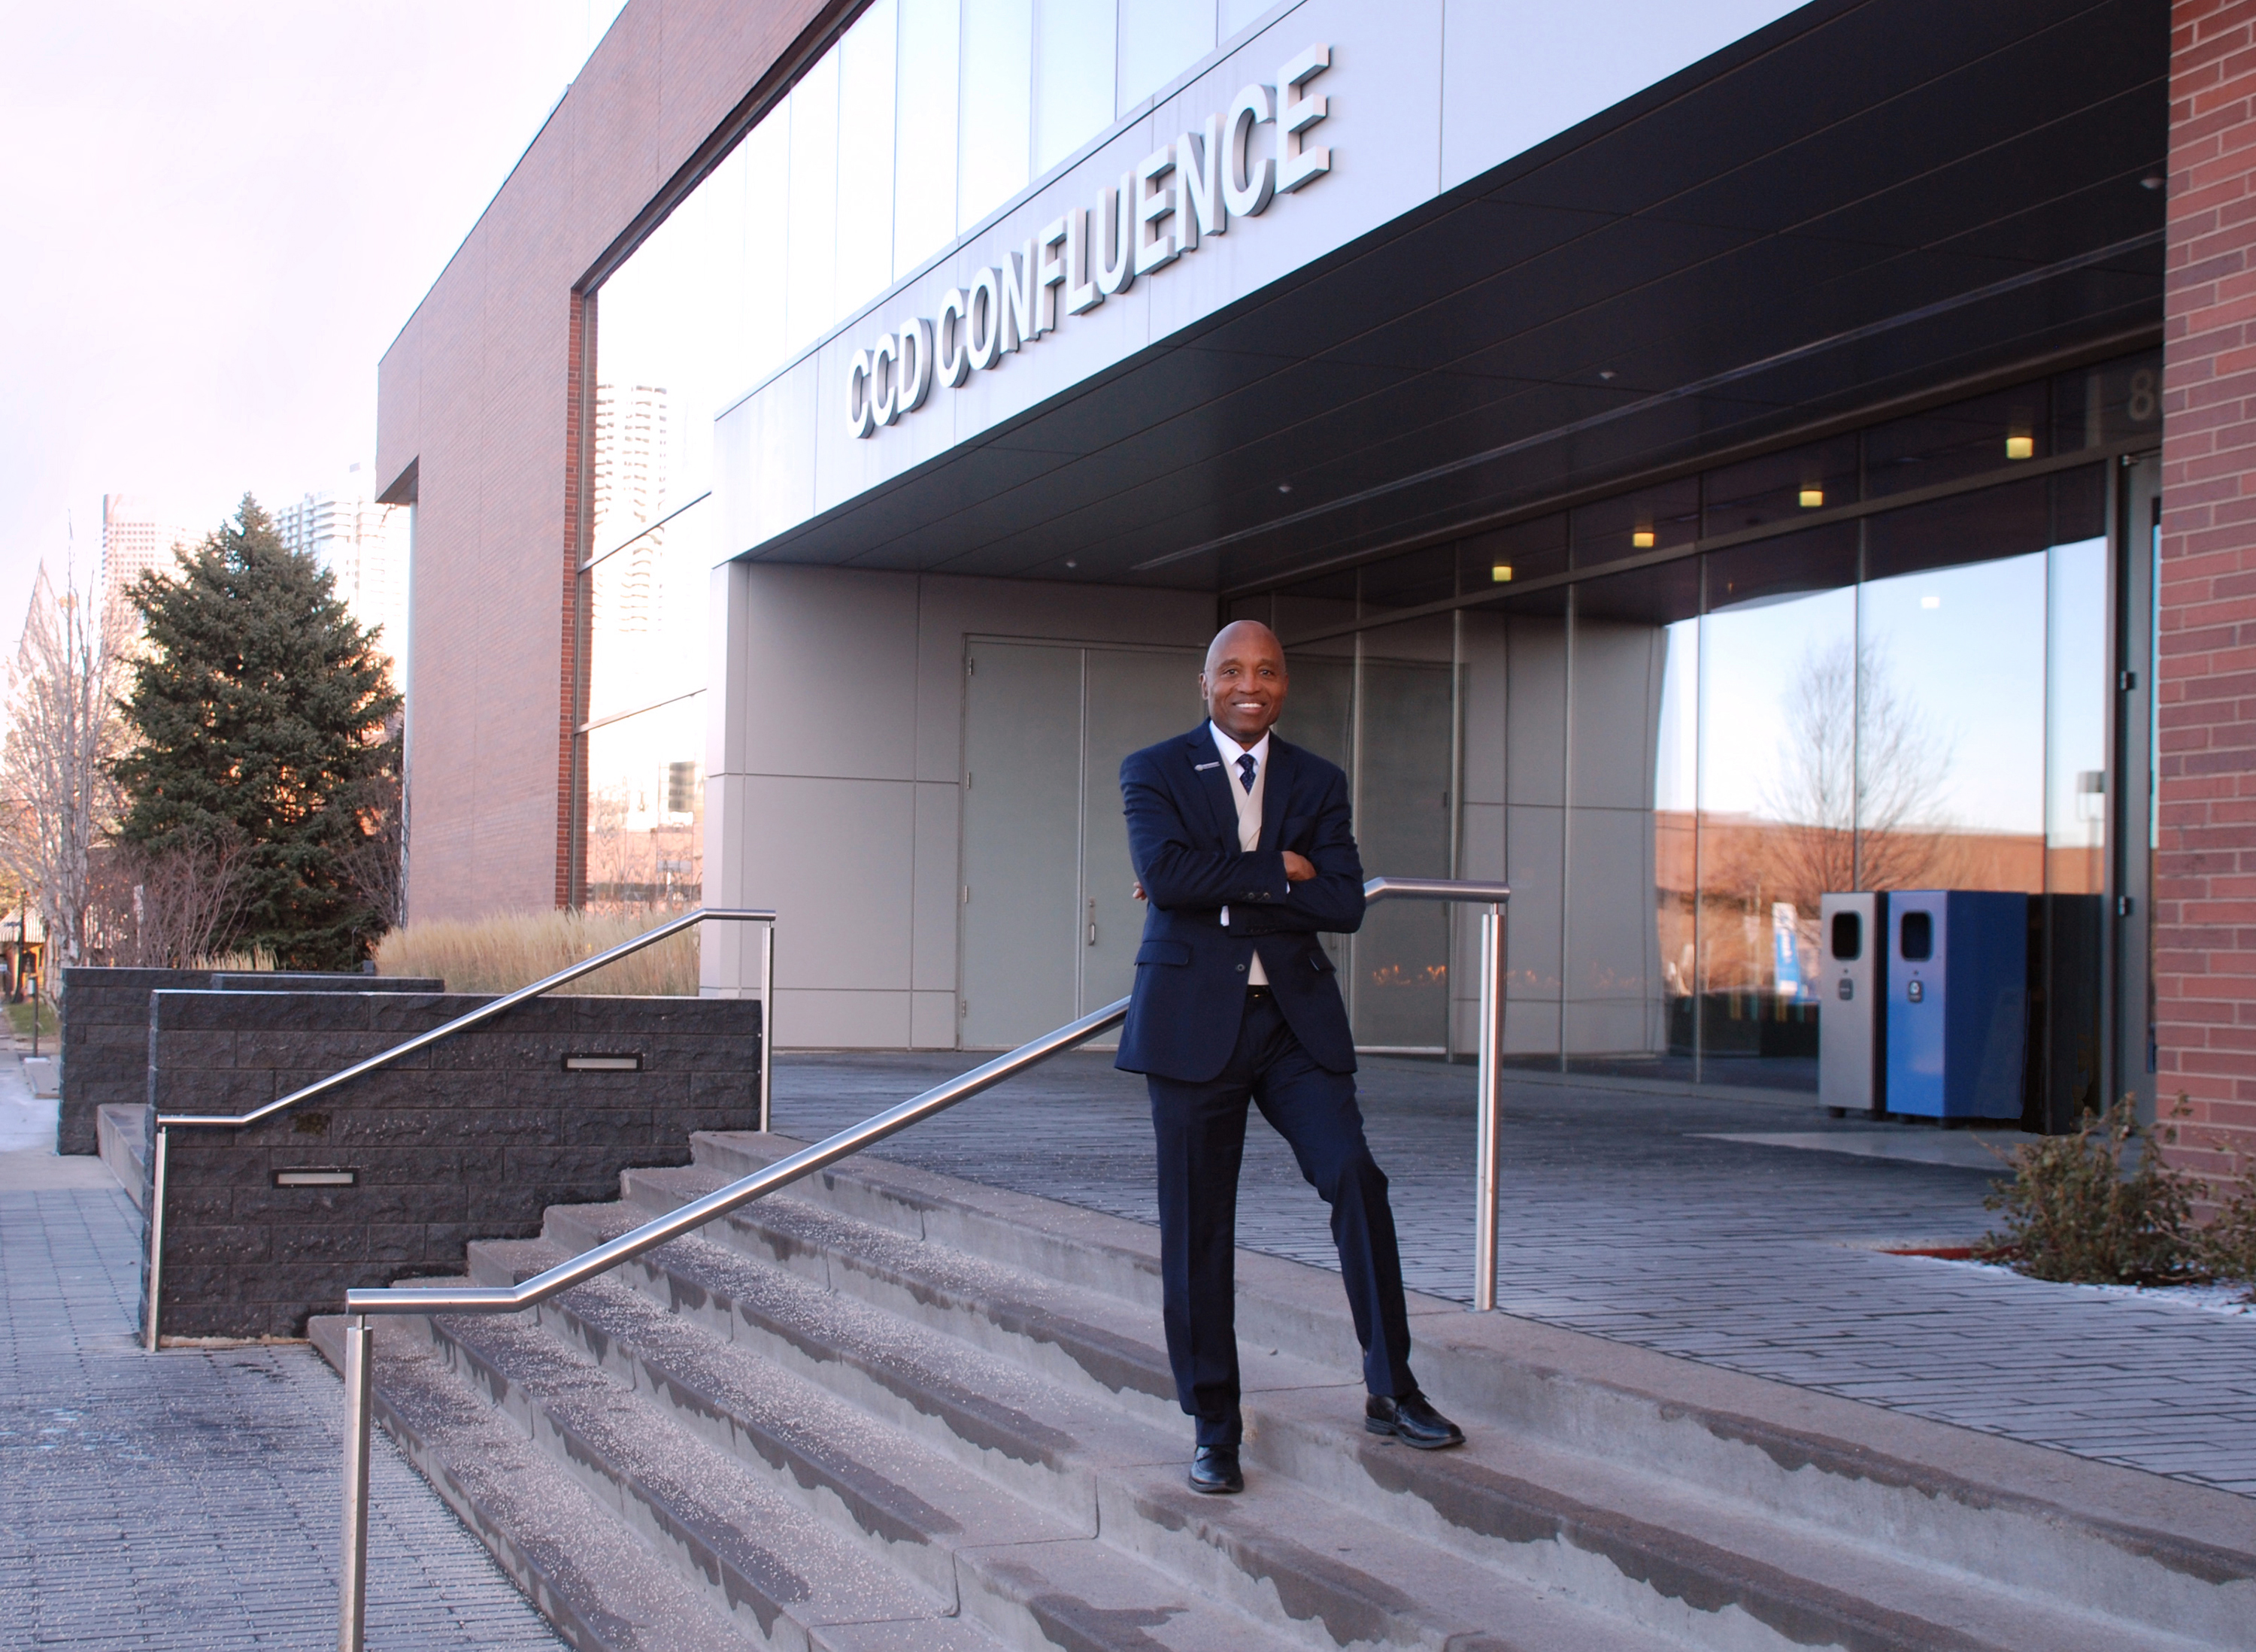 a man standing on the steps in front of a building